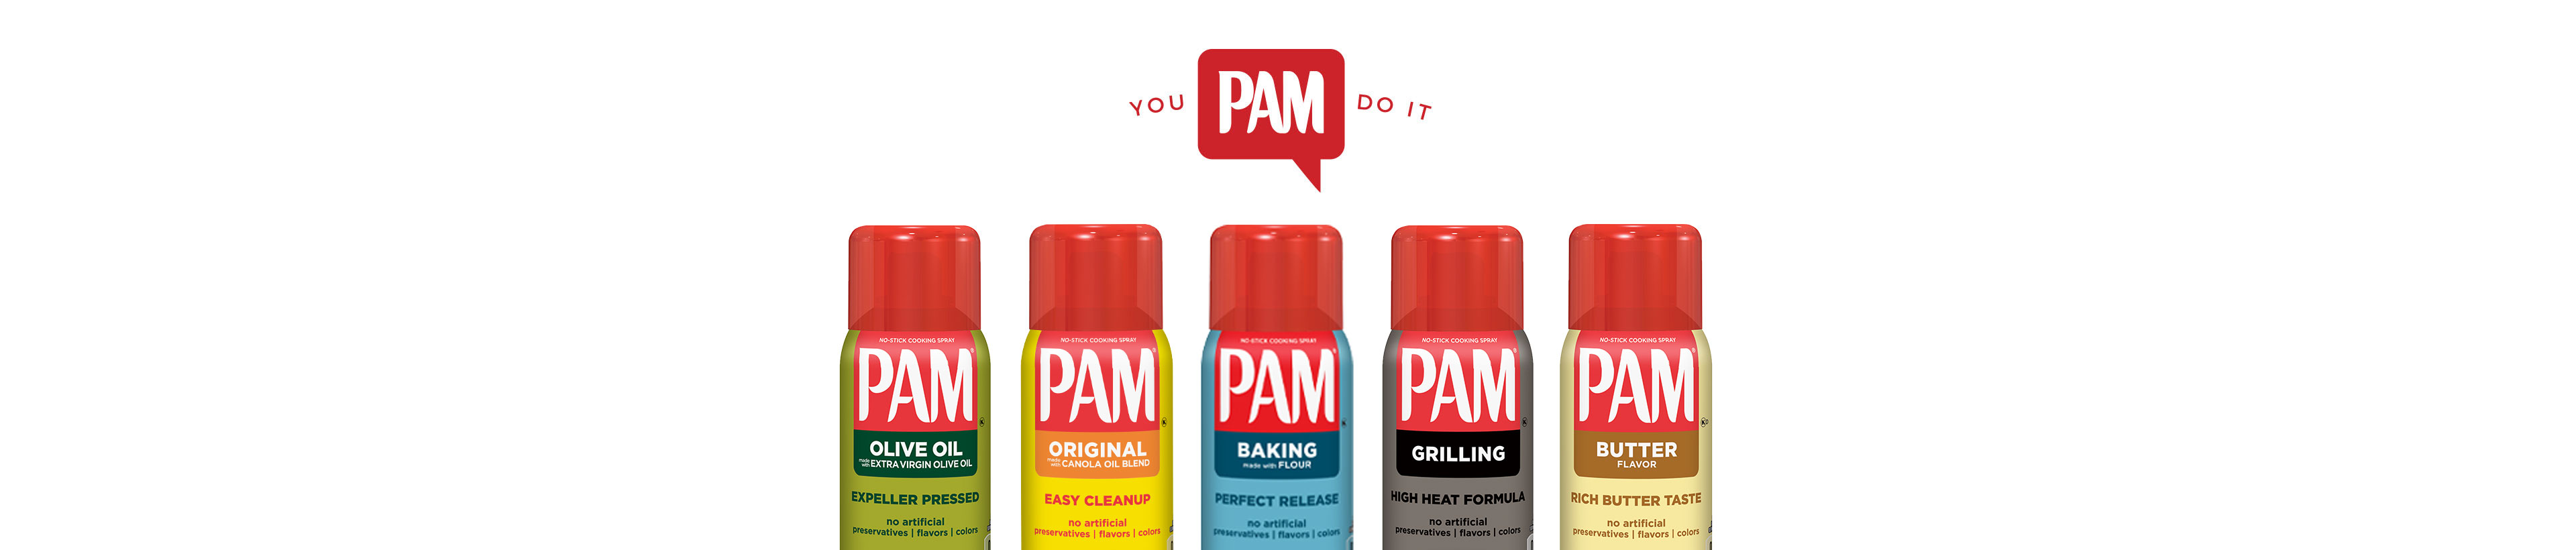 Pam Products